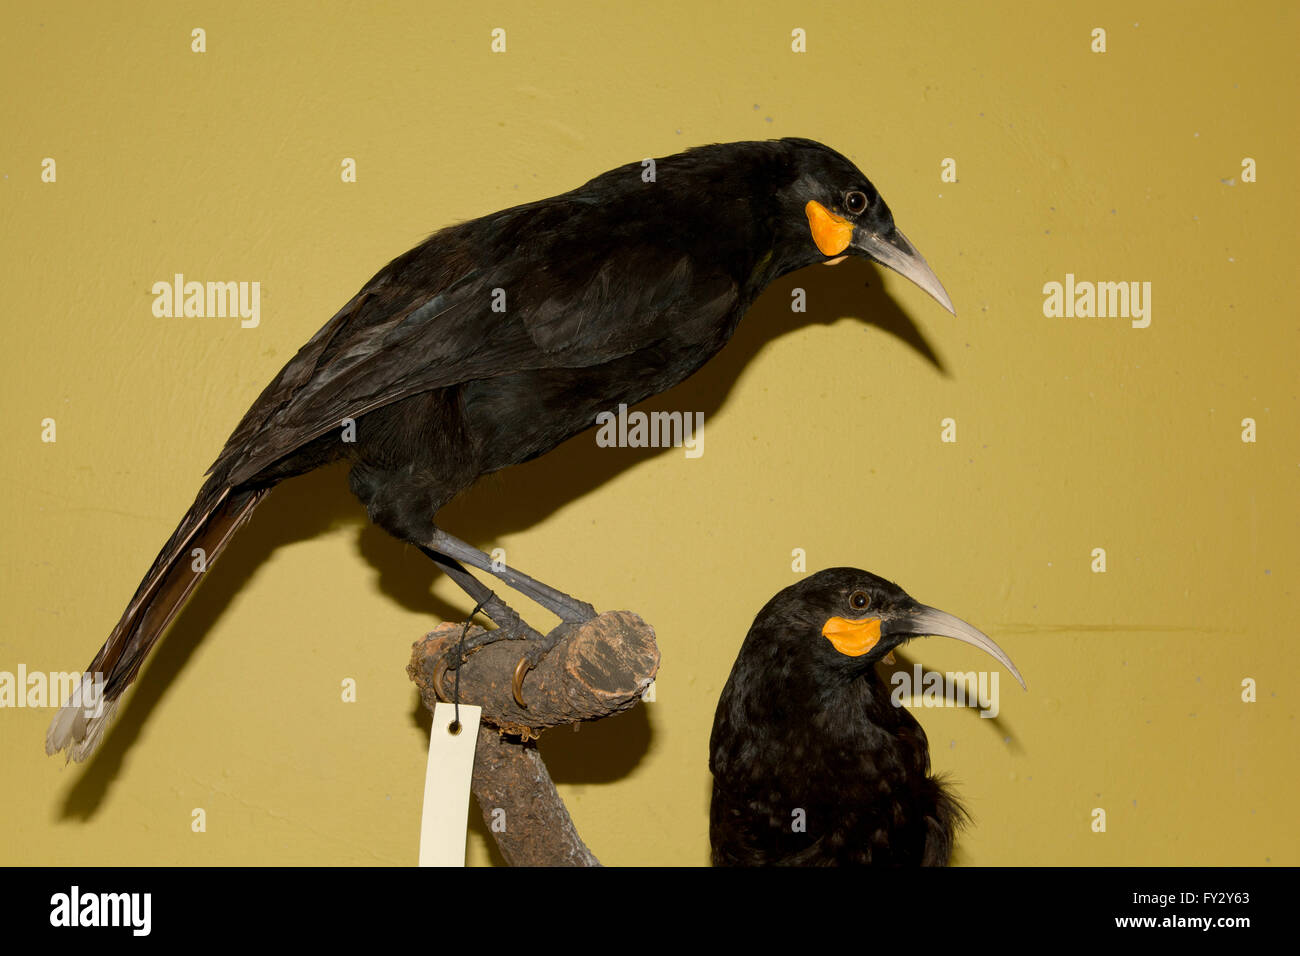 These huias in the basement archives of Te Papa National Museum in Wellington in New Zealand went extinct in the - Stock Image